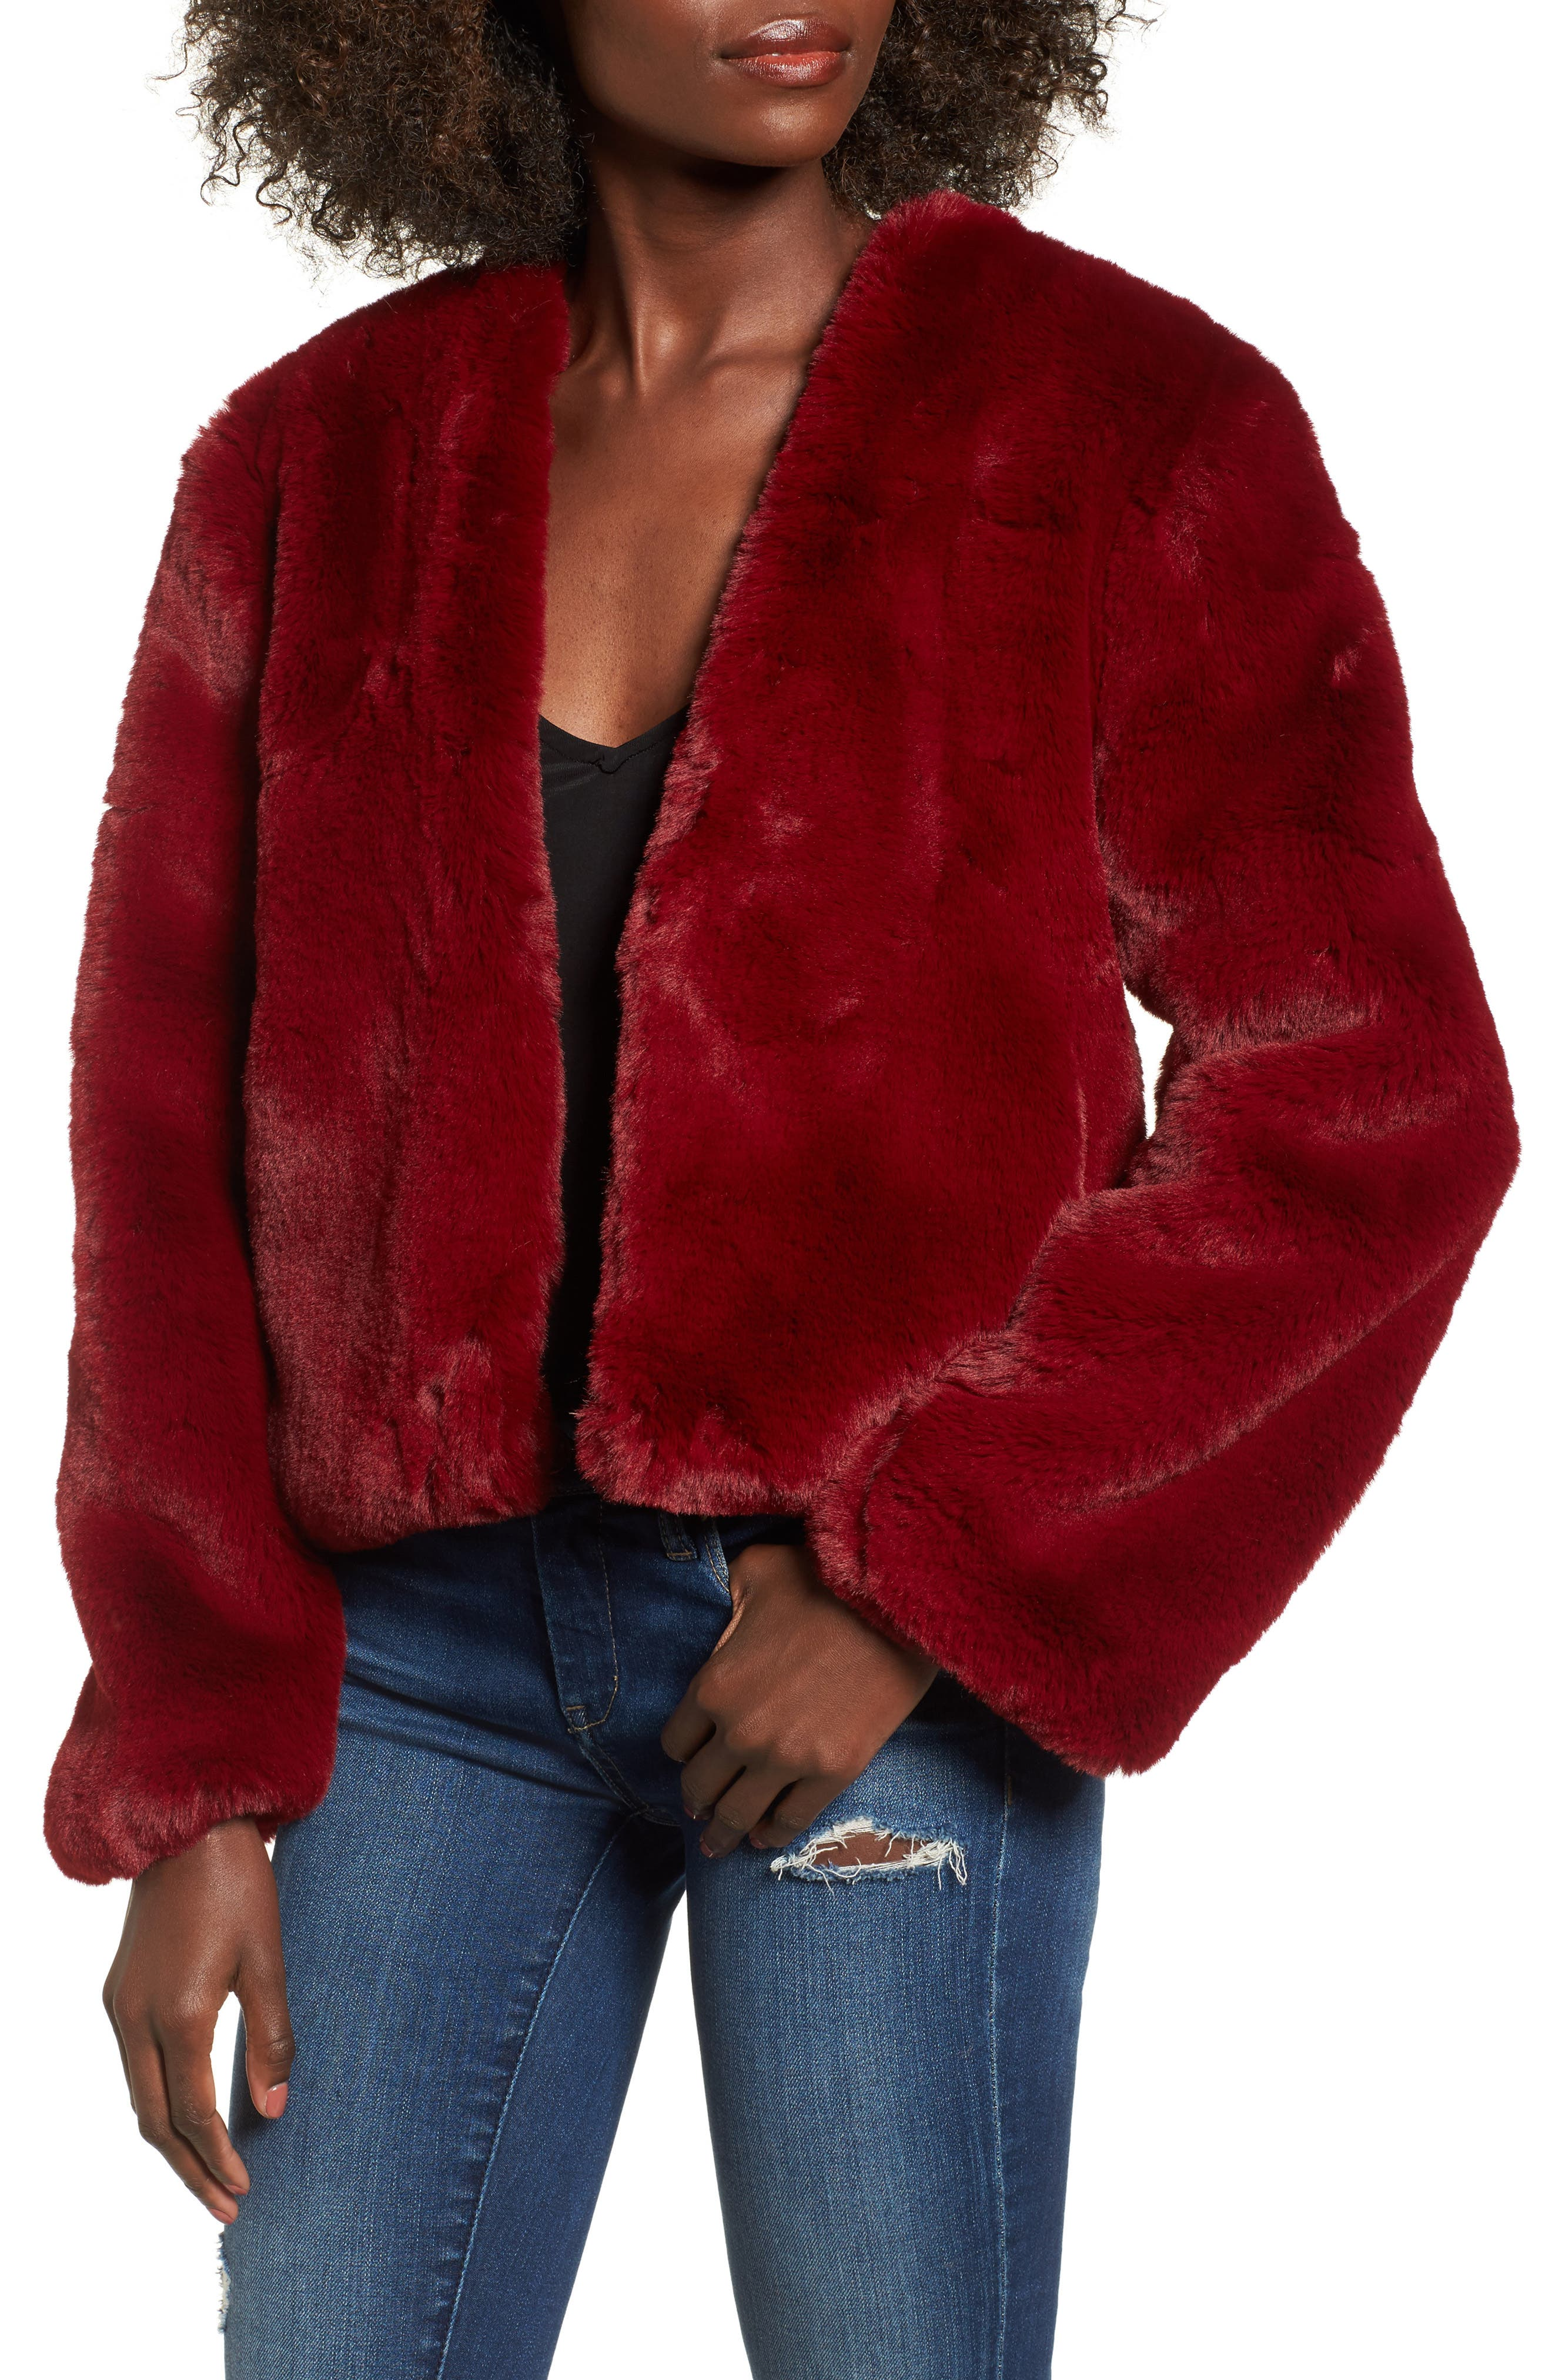 Lonely Hearts Faux Fur Jacket,                         Main,                         color, 600